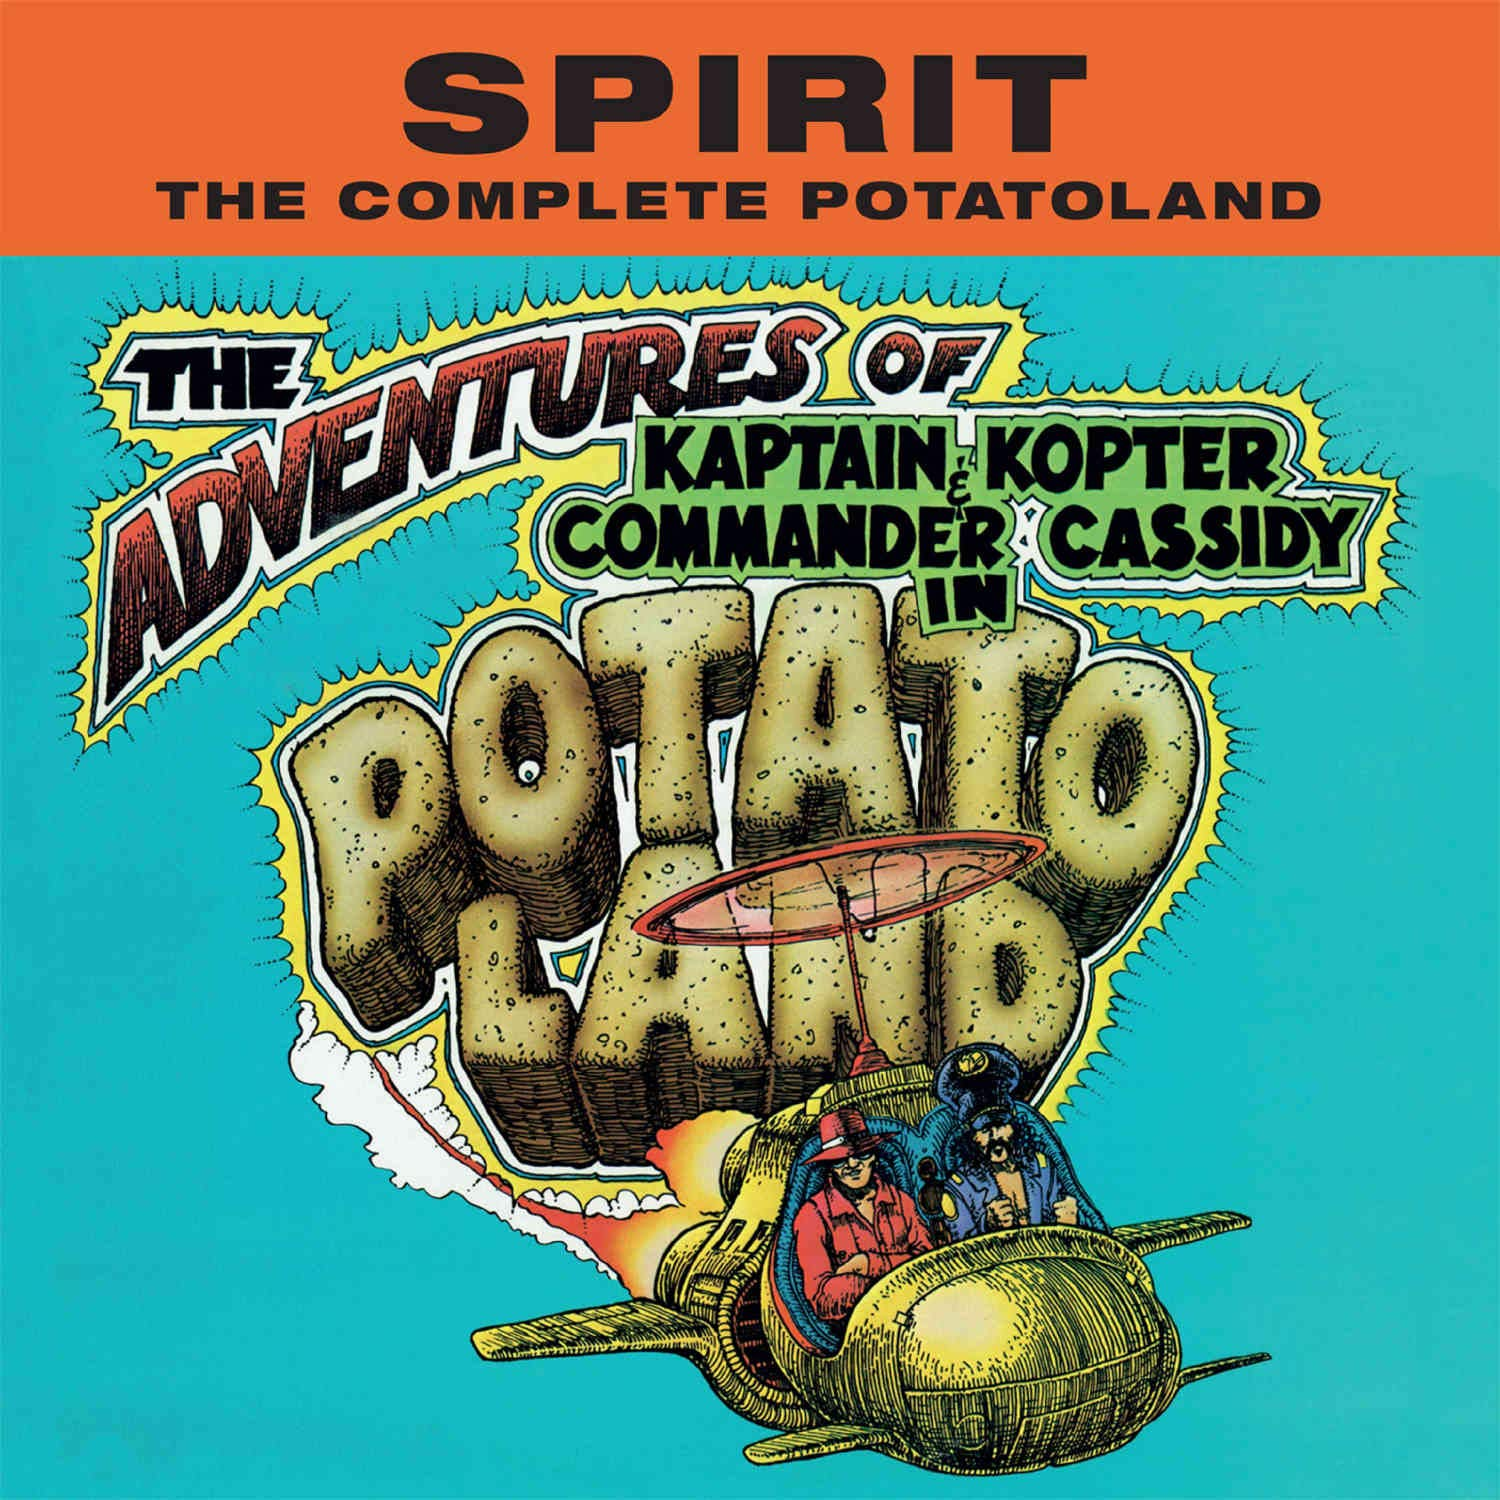 Spirit — The Complete Potatoland